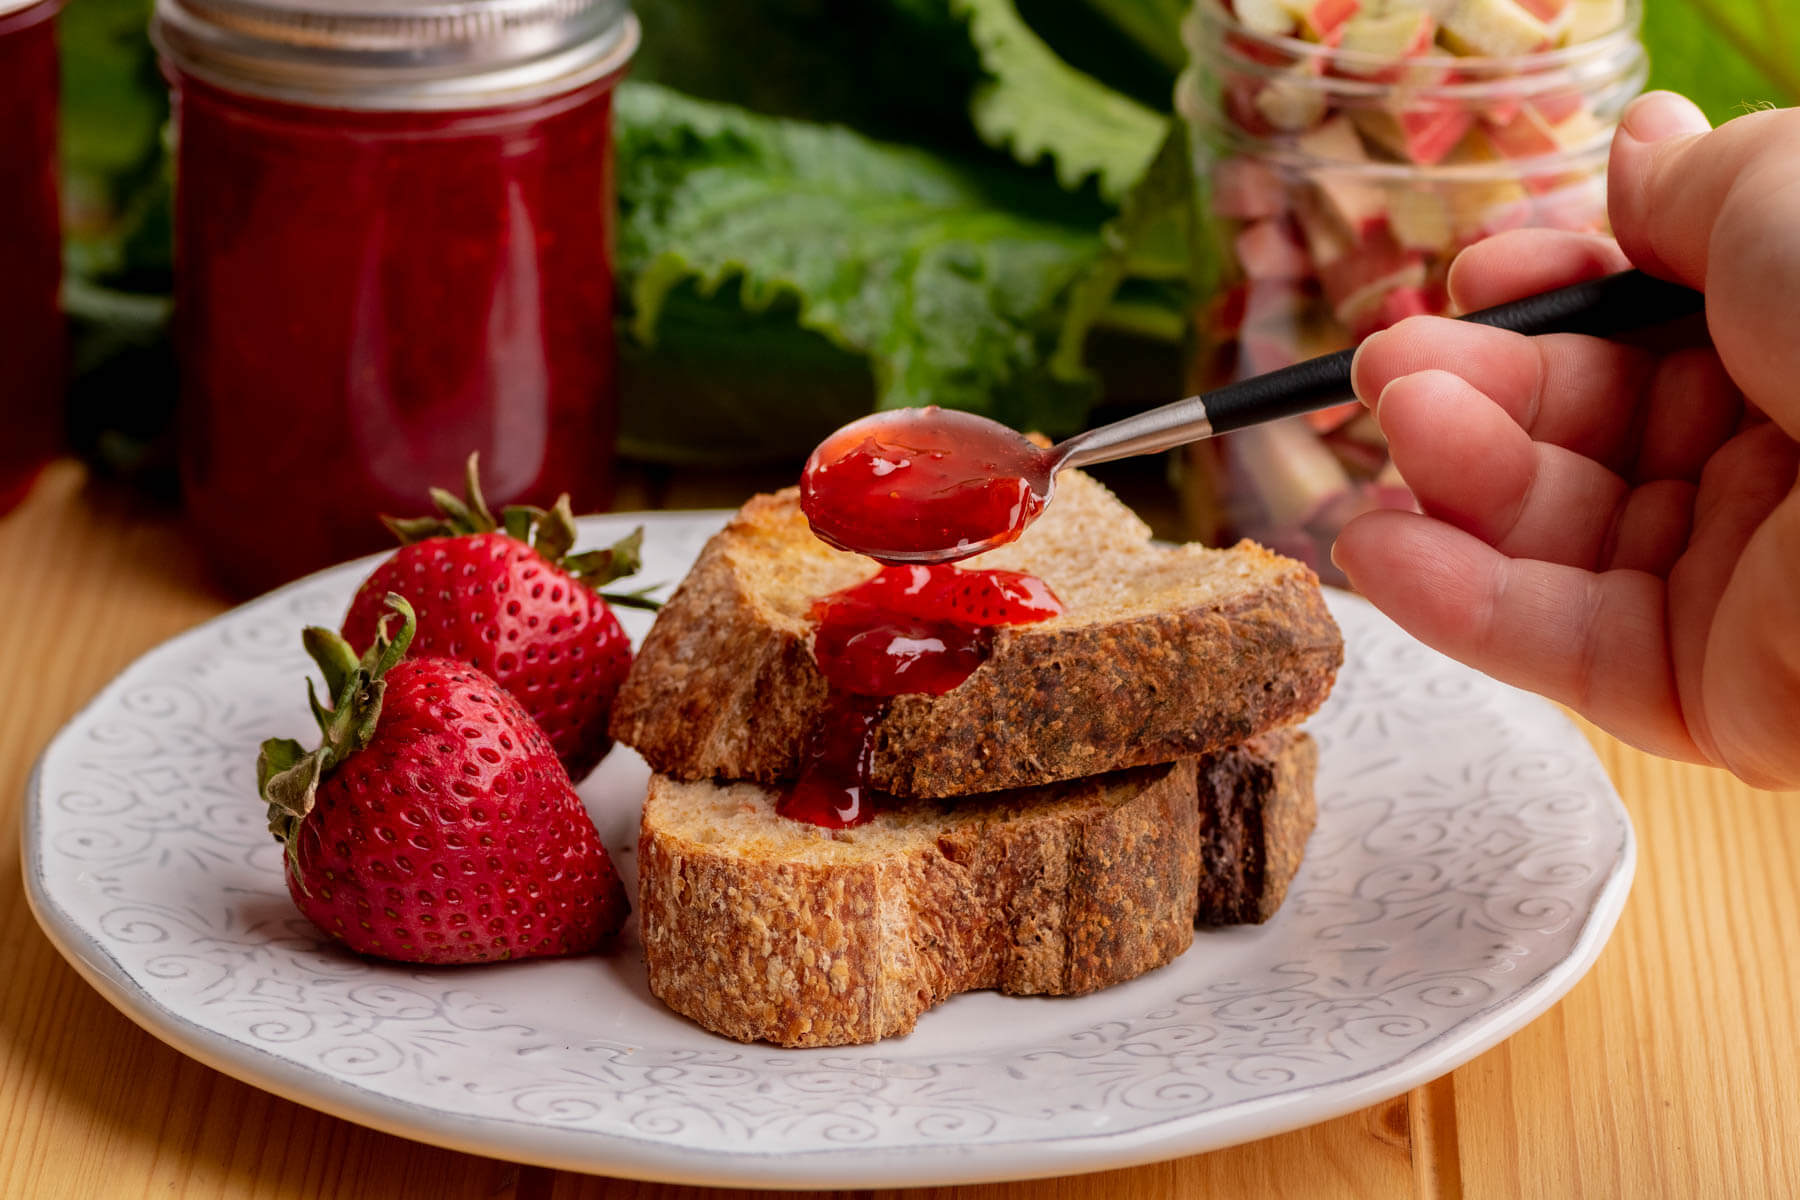 Two sliced of toast slathered in Strawberry Rhubarb Jam with a jar of jam and fresh rhubarb in the background.